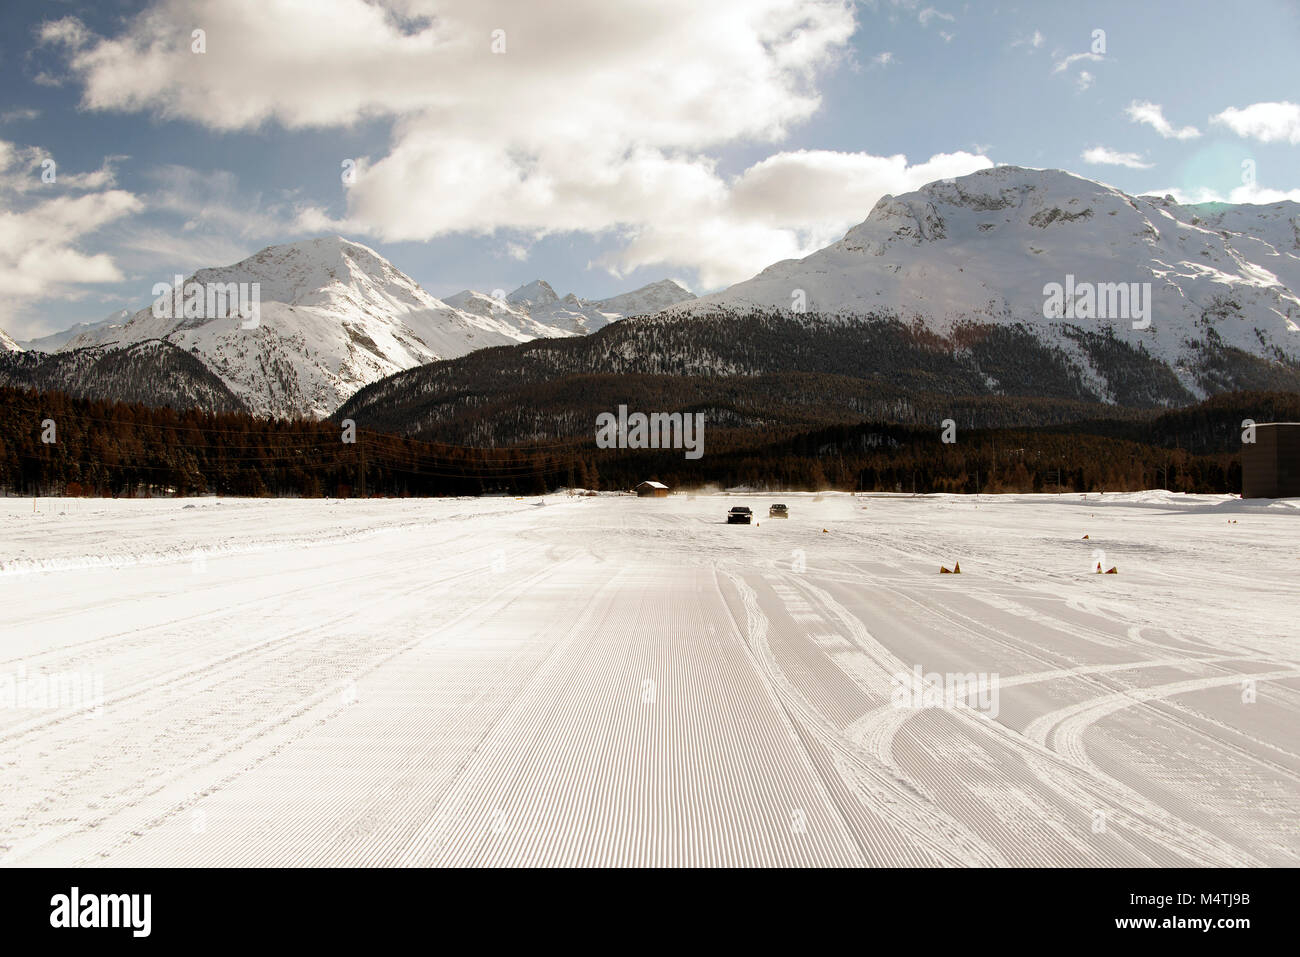 Frozen lake used as a piste in the snowy alps in st moritz alps switzerland in winter - Stock Image